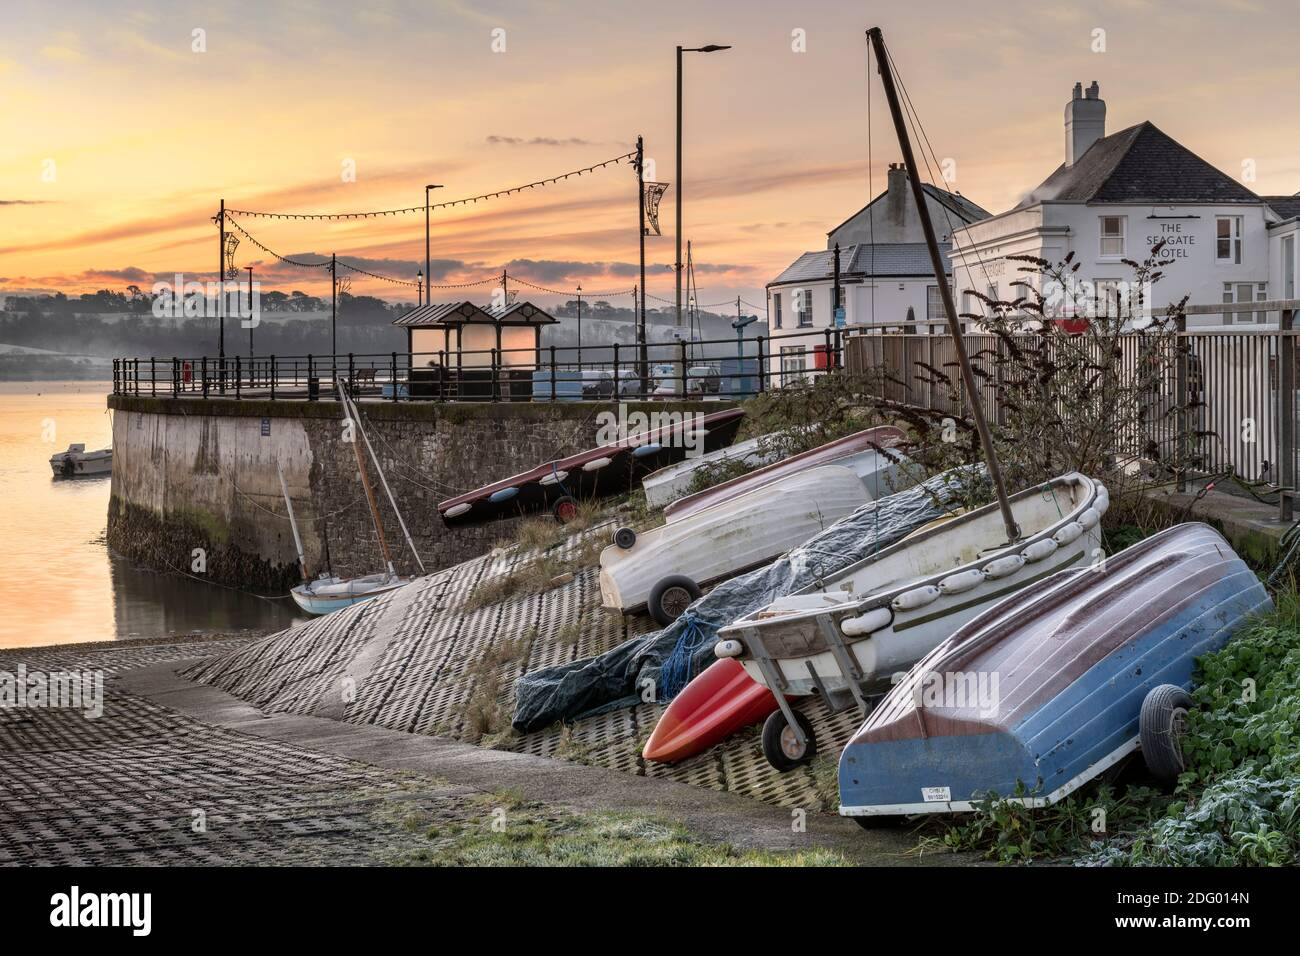 Appledore, North Devon, England. Monday 7th December 2020. UK Weather. After a very cold night in North Devon, a layer of frost covers the small boats tied up along the quay at the coastal village of Appledore. Credit: Terry Mathews/Alamy Live News Stock Photo